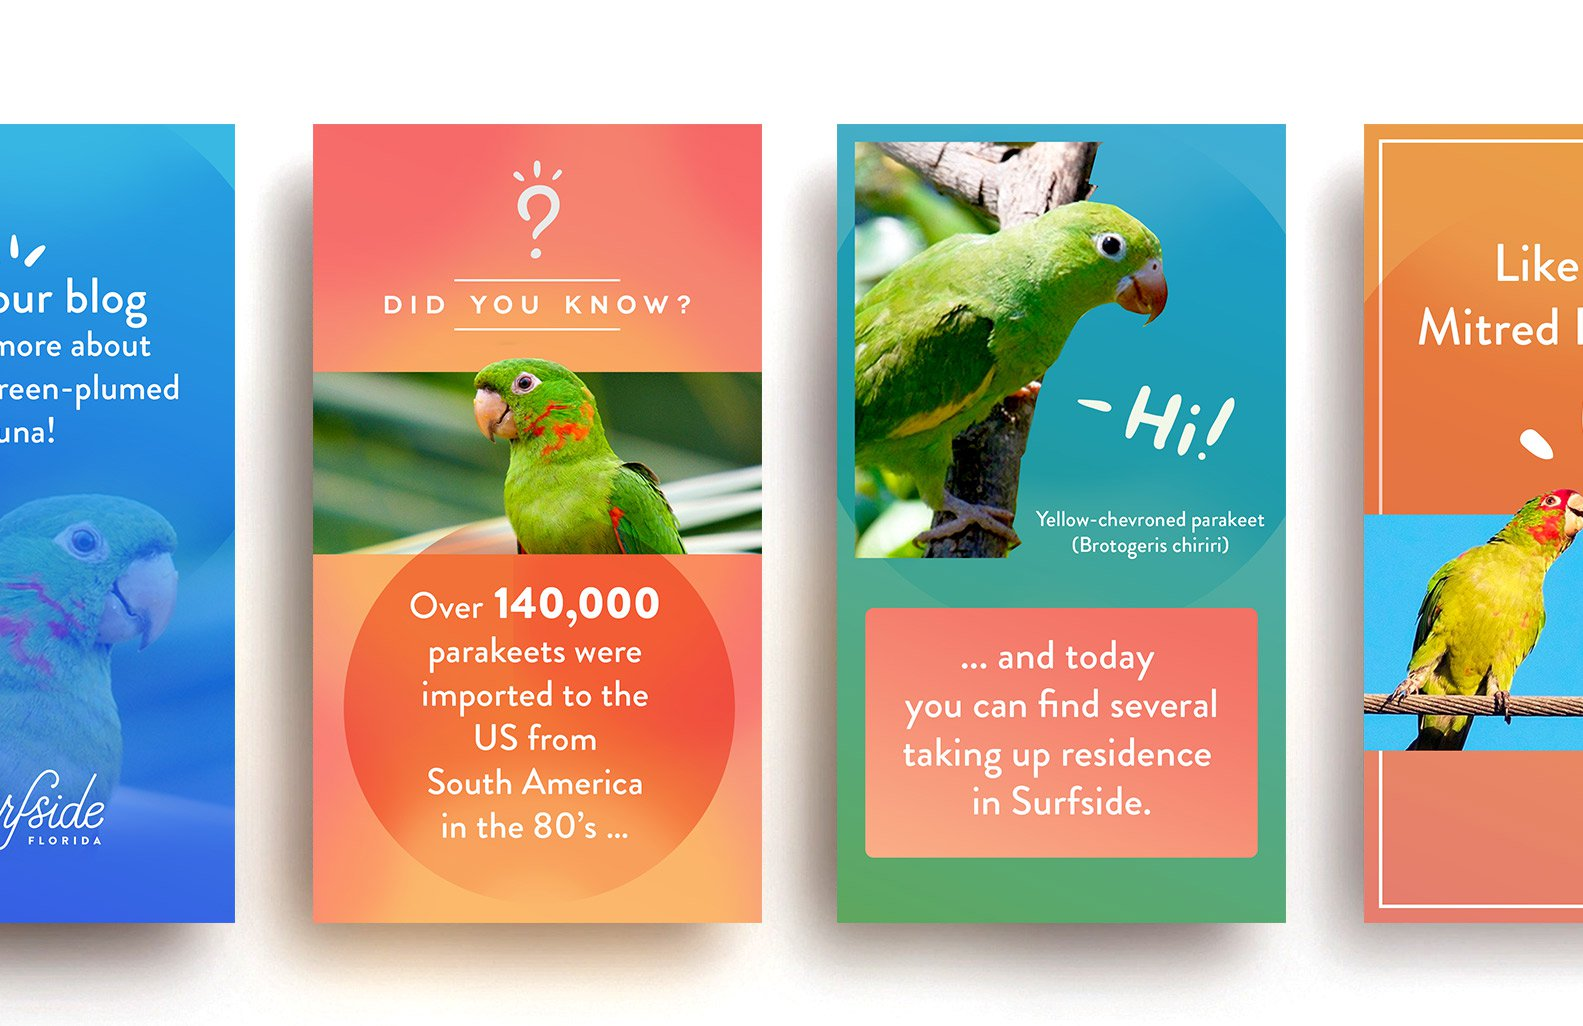 Jacober Creative Identity and Campaign for the Town of Surfside Florida - Photo Social Media stories design featuring Surfside birds